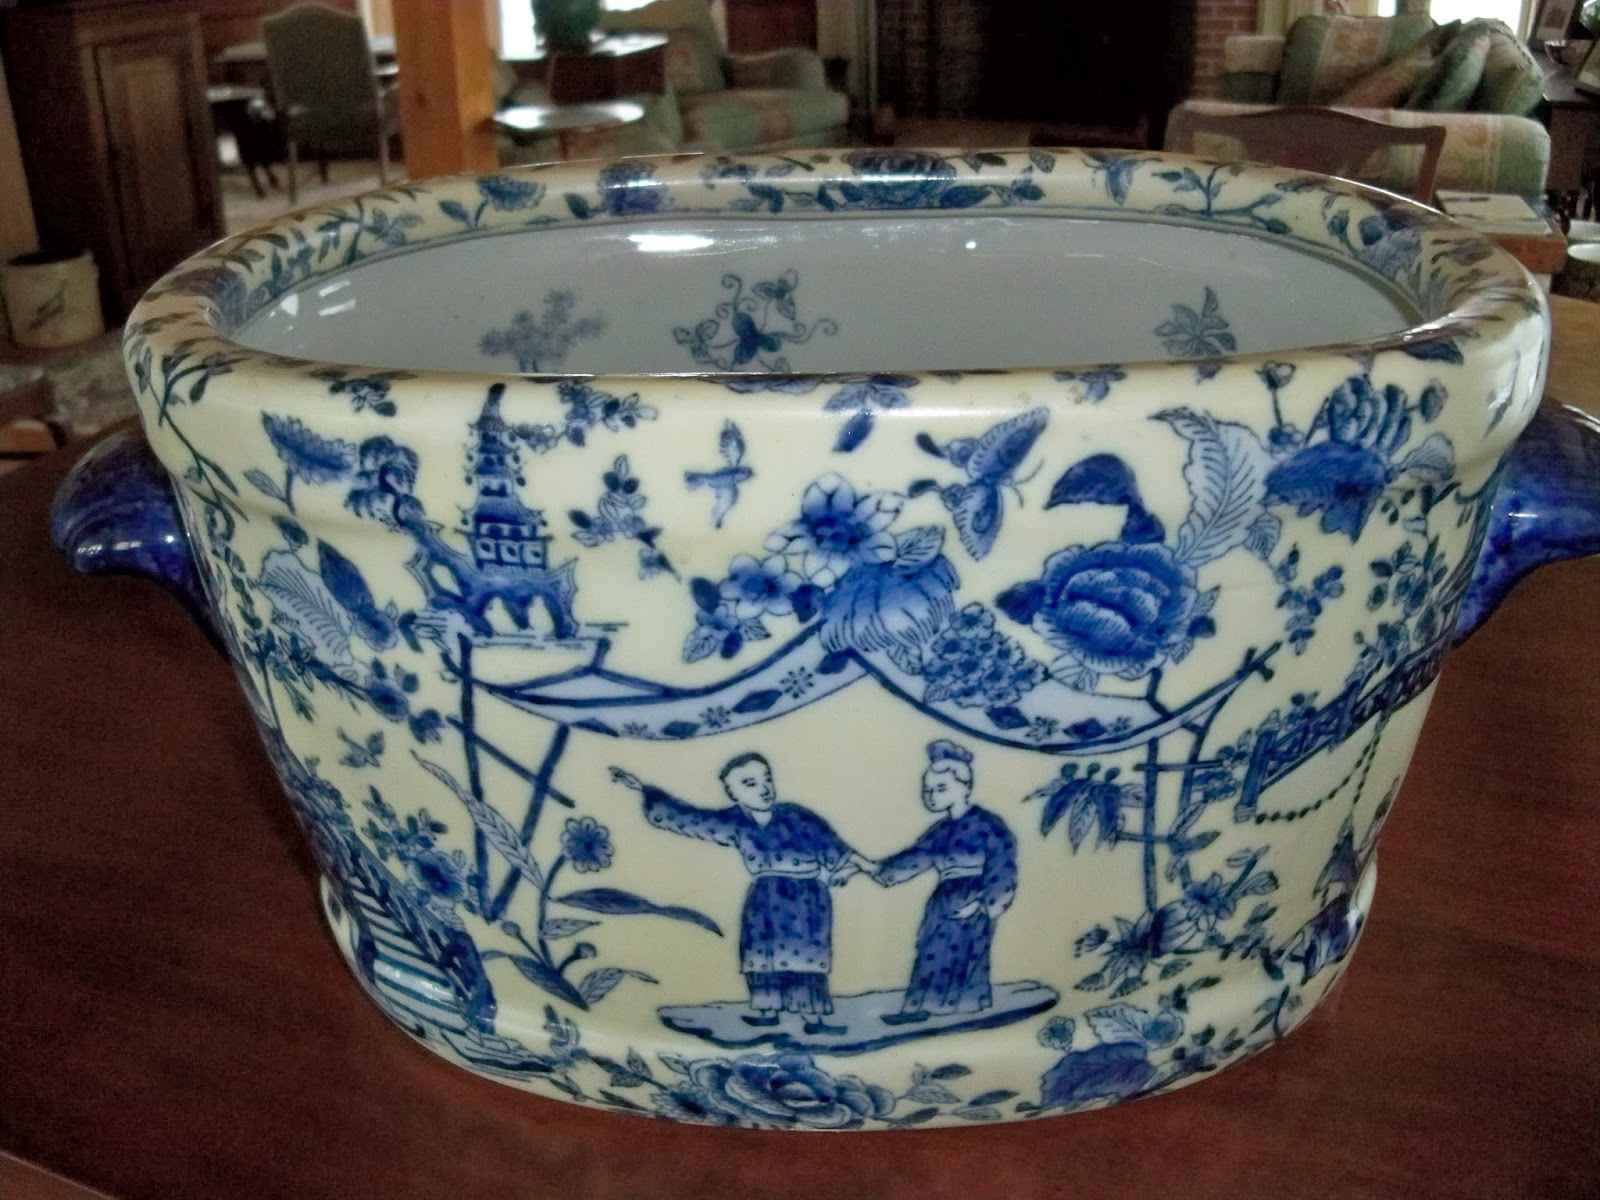 Goshen Antiques and Art: March 2014